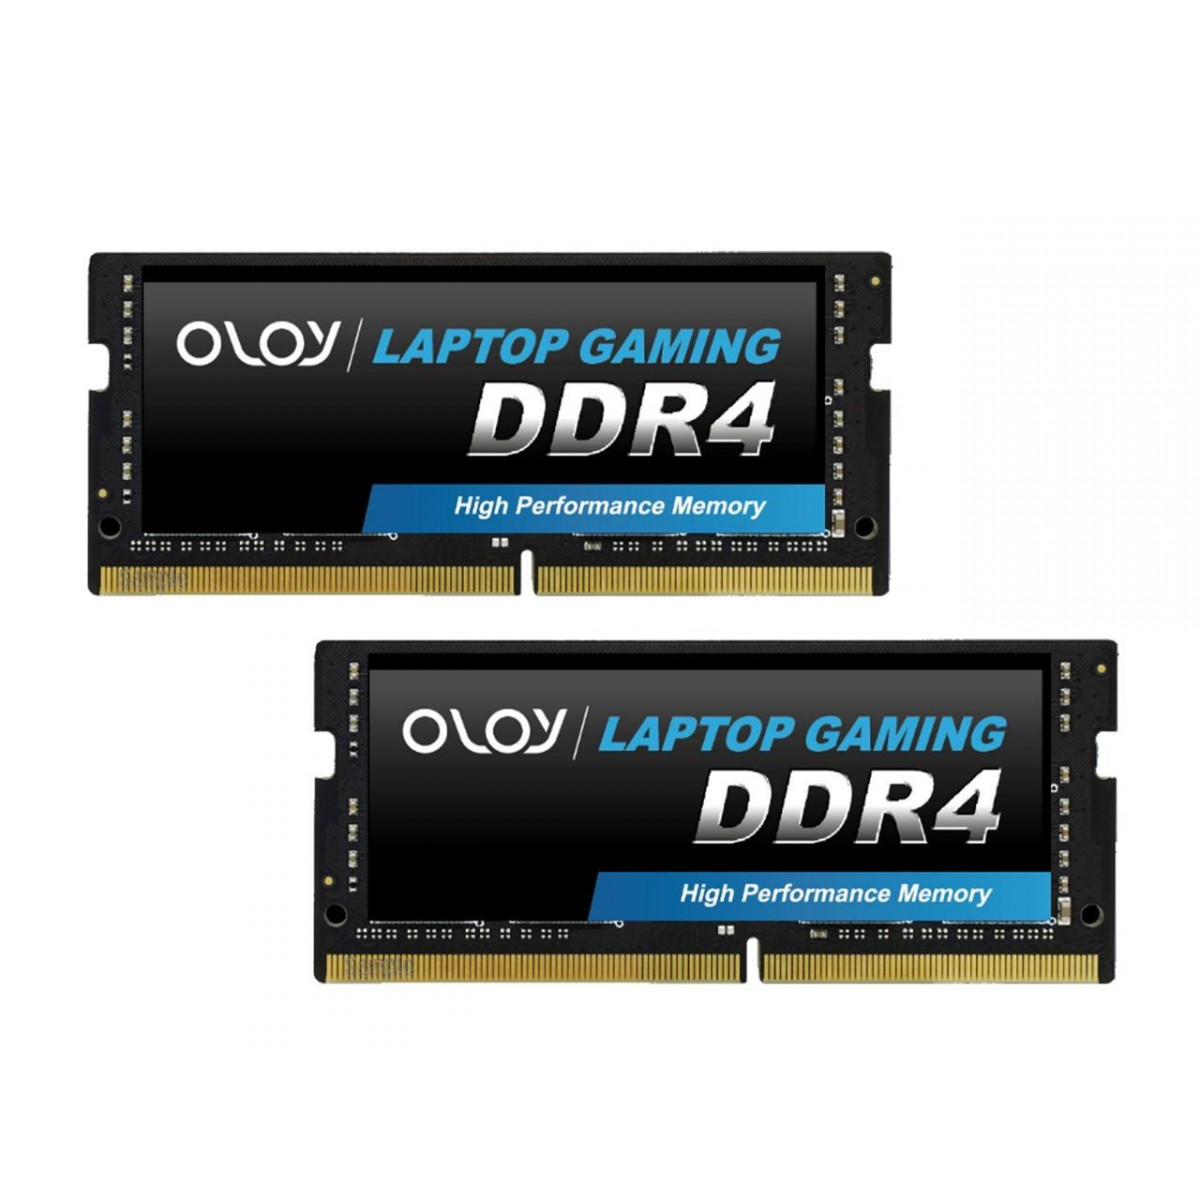 Memória Notebook DDR4 Oloy Laptop Gaming, 32GB (2x16GB), 2666MHZ, MD4S162619MZDC